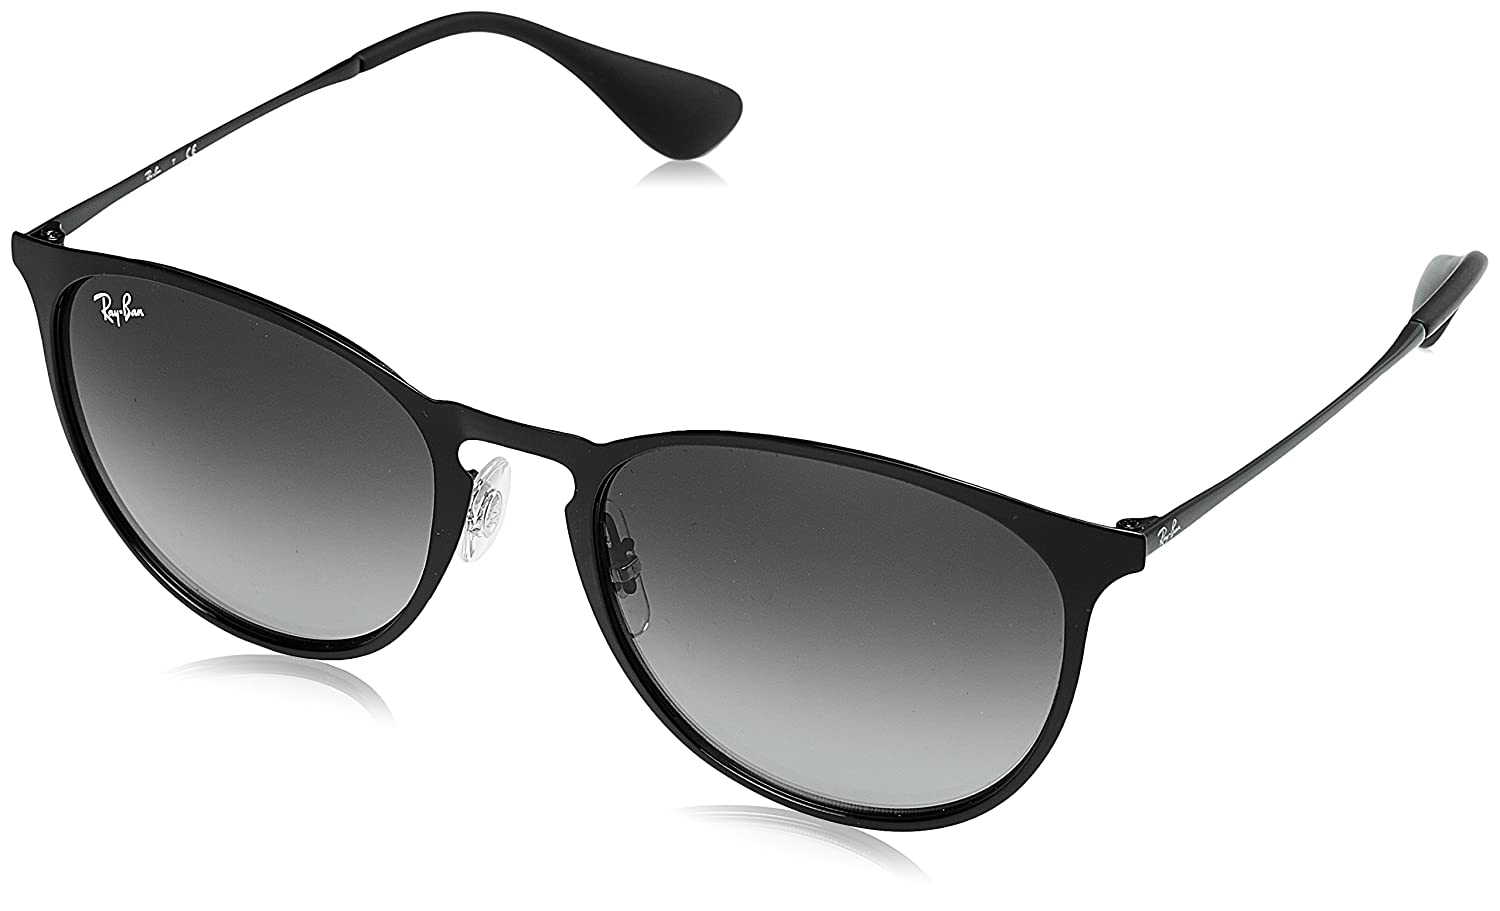 5c93d7a2b4 Ray-Ban RB3539 002 8G Erika Metal Sunglasses  Ray-Ban  Amazon.ca  Shoes    Handbags